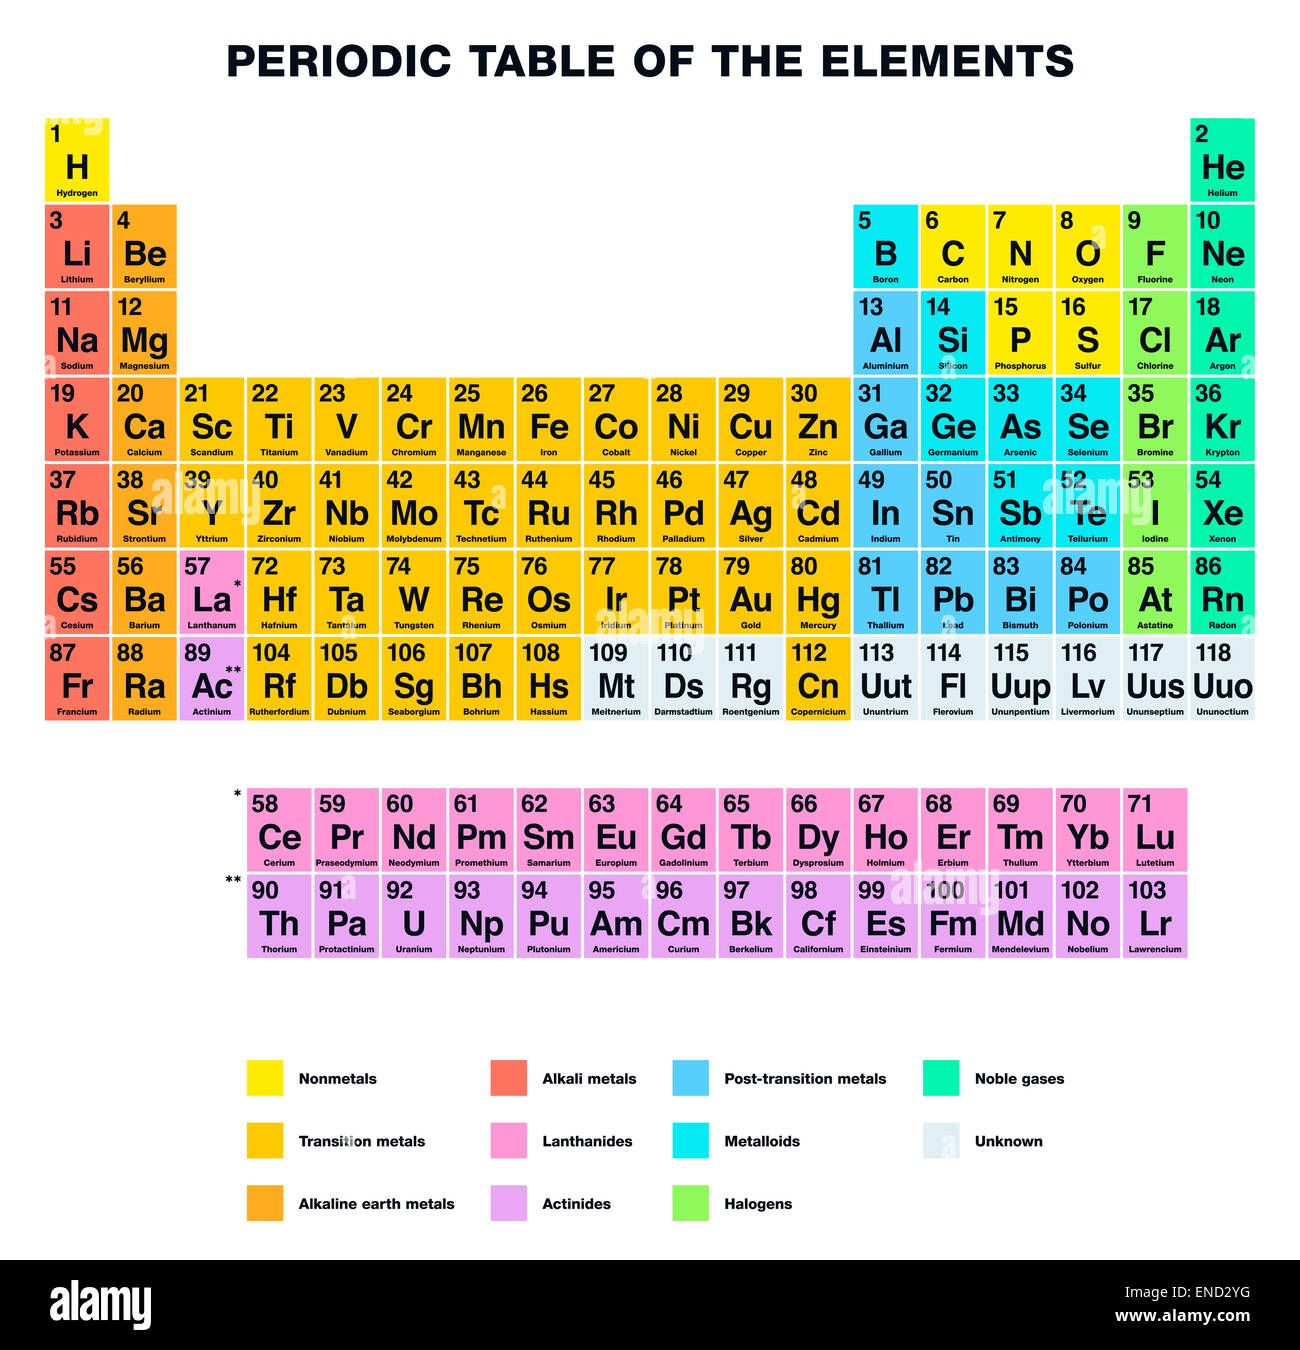 Periodic table of the elements english labeling stock photo periodic table of the elements english labeling urtaz Image collections